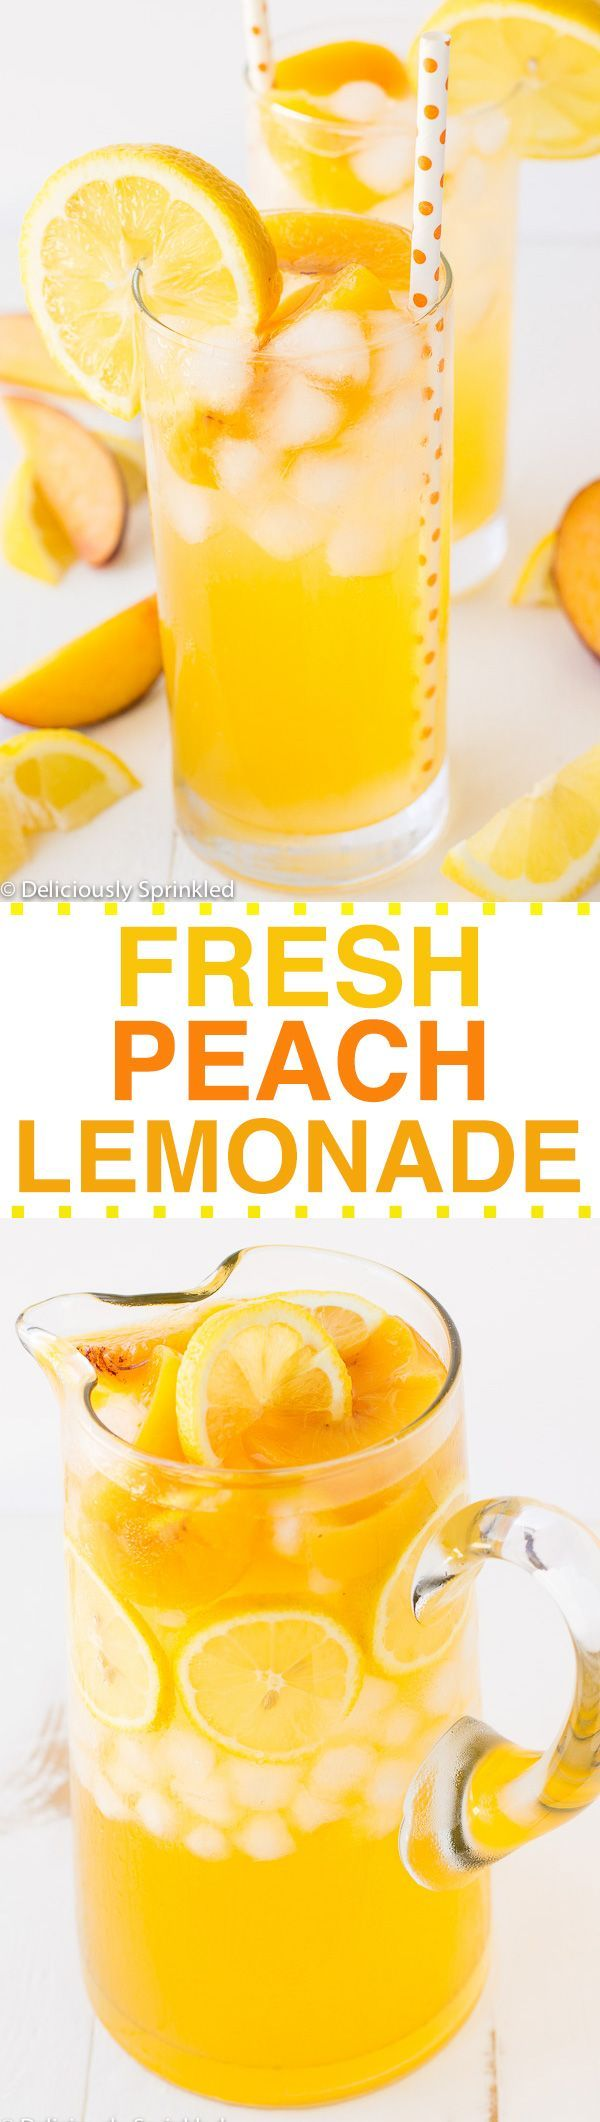 FRESH PEACH LEMONADE RECIPE: SUPER EASY TO MAKE & TASTE SO GOOD!!!!!